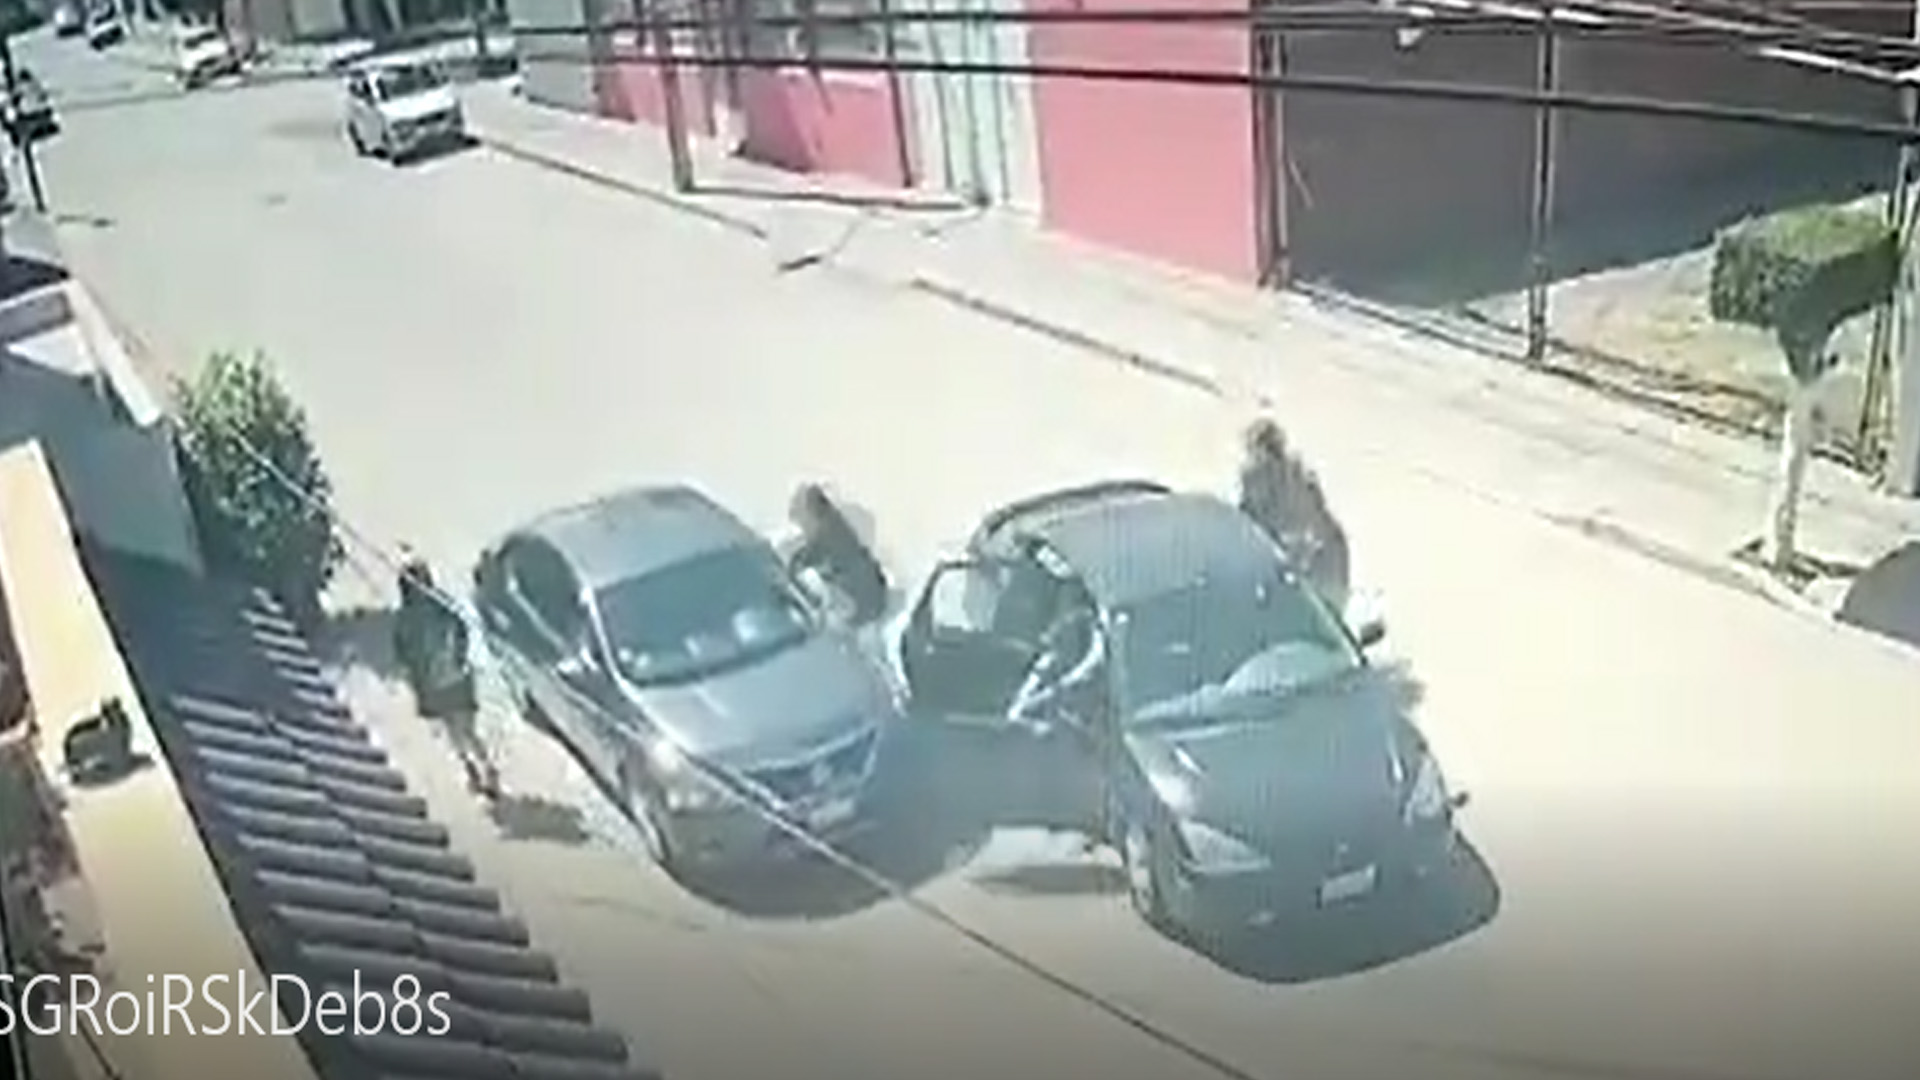 #Video Automovilista escapa en León de intento de asalto; daña auto de criminales - Foto Captura de pantalla